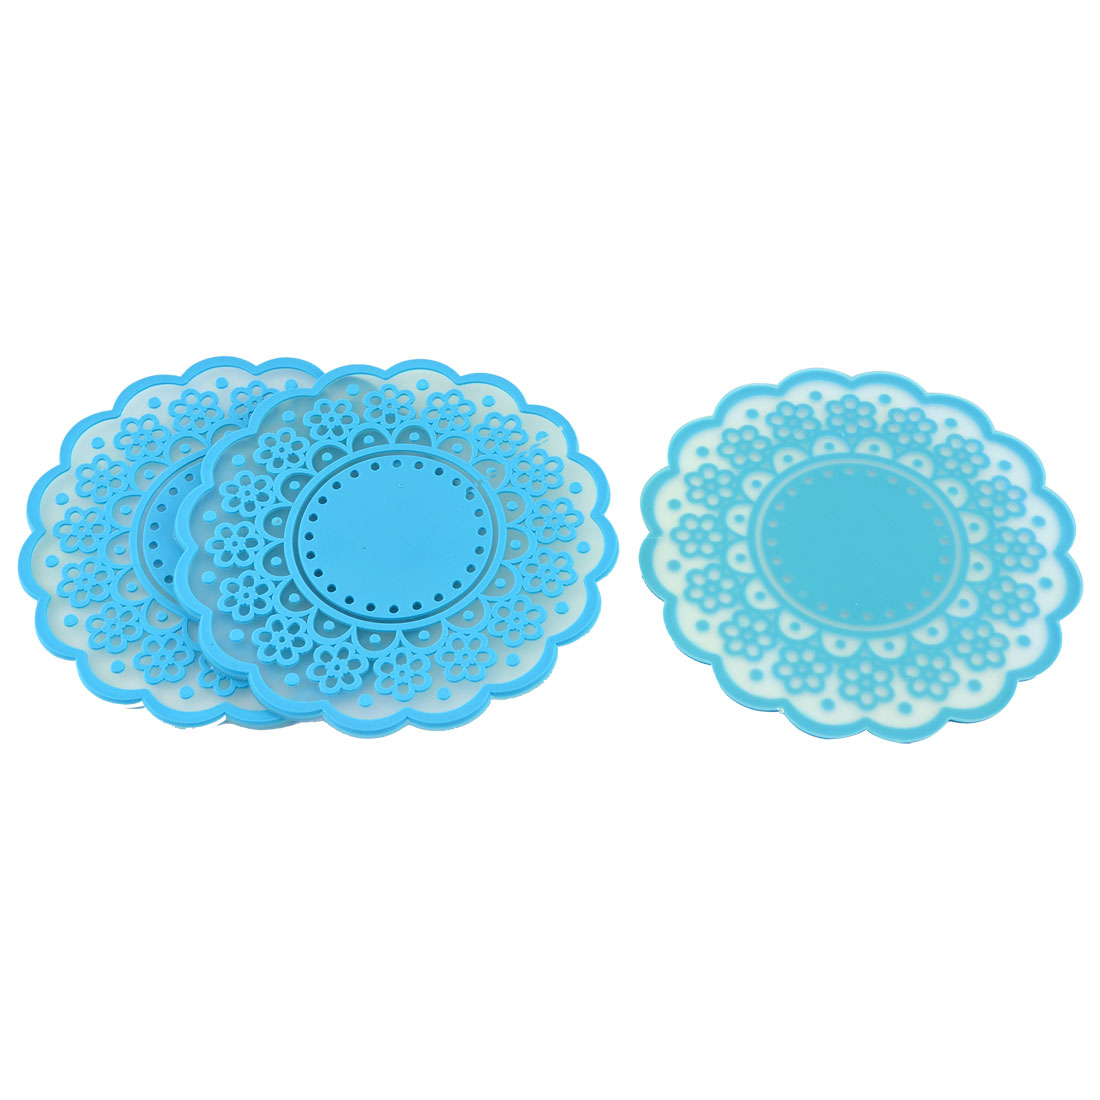 Household Silicone Flower Shaped Teapot Bottle Cup Coasters Mat Blue 3 Pcs